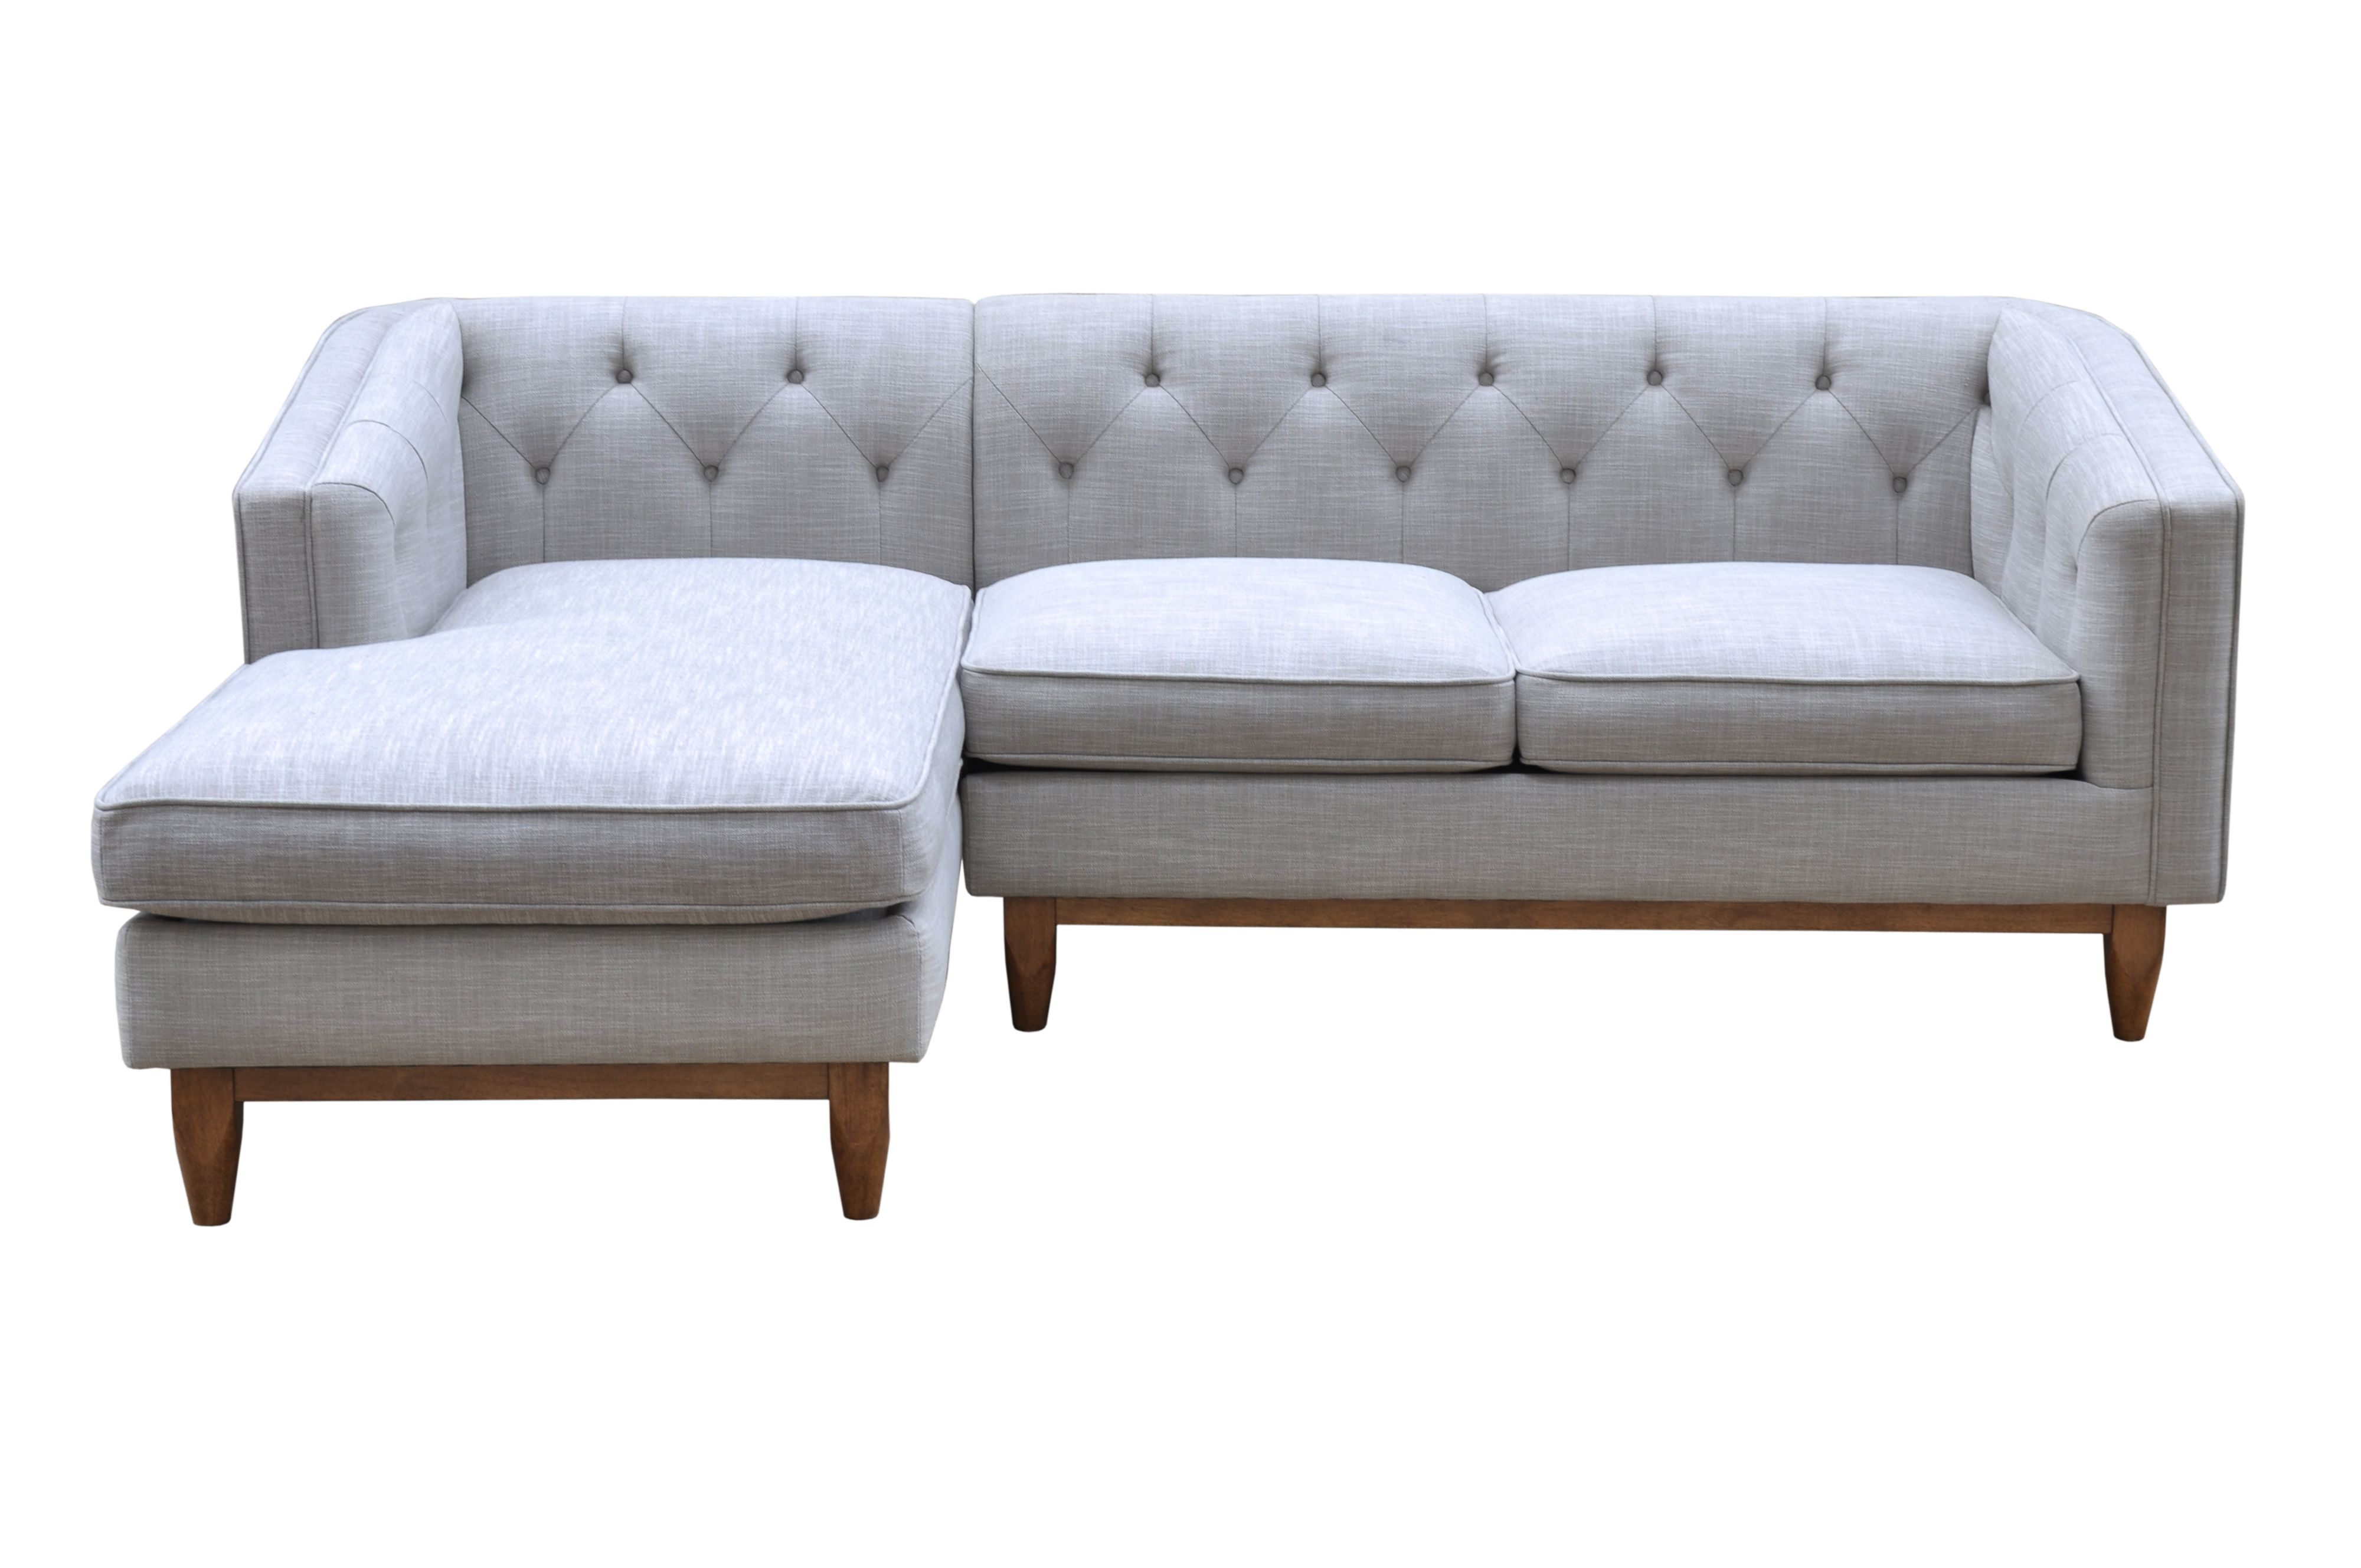 Buy cheap chaise sofa compare sofas prices for best uk deals for Cheap sofa set deals